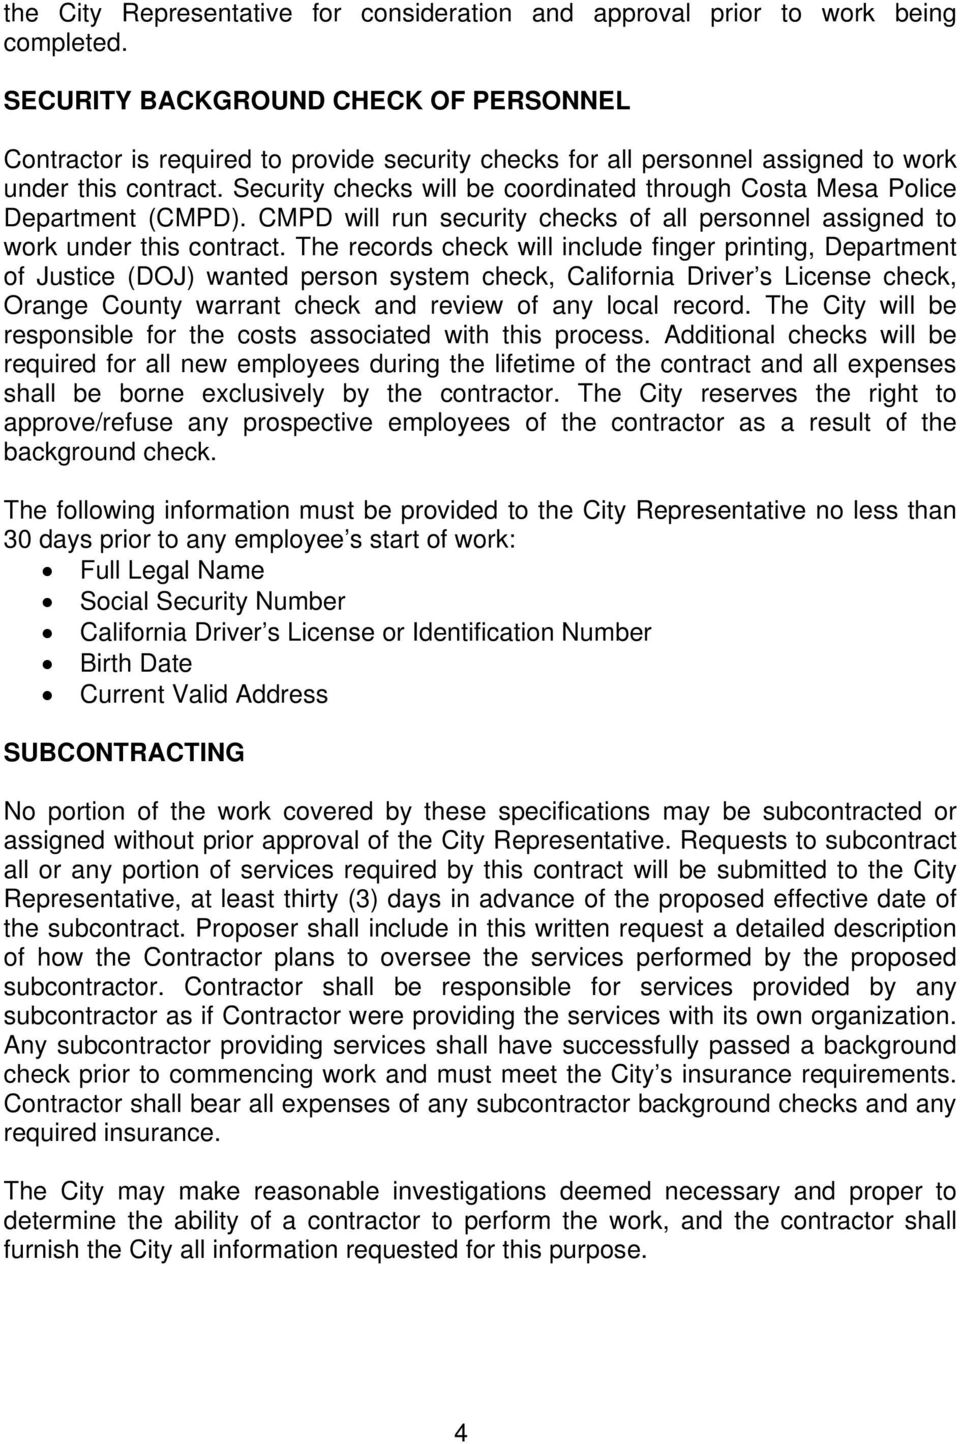 REQUEST FOR PROPOSAL FOR MUNICIPAL FACILITY HVAC MAINTENANCE AT